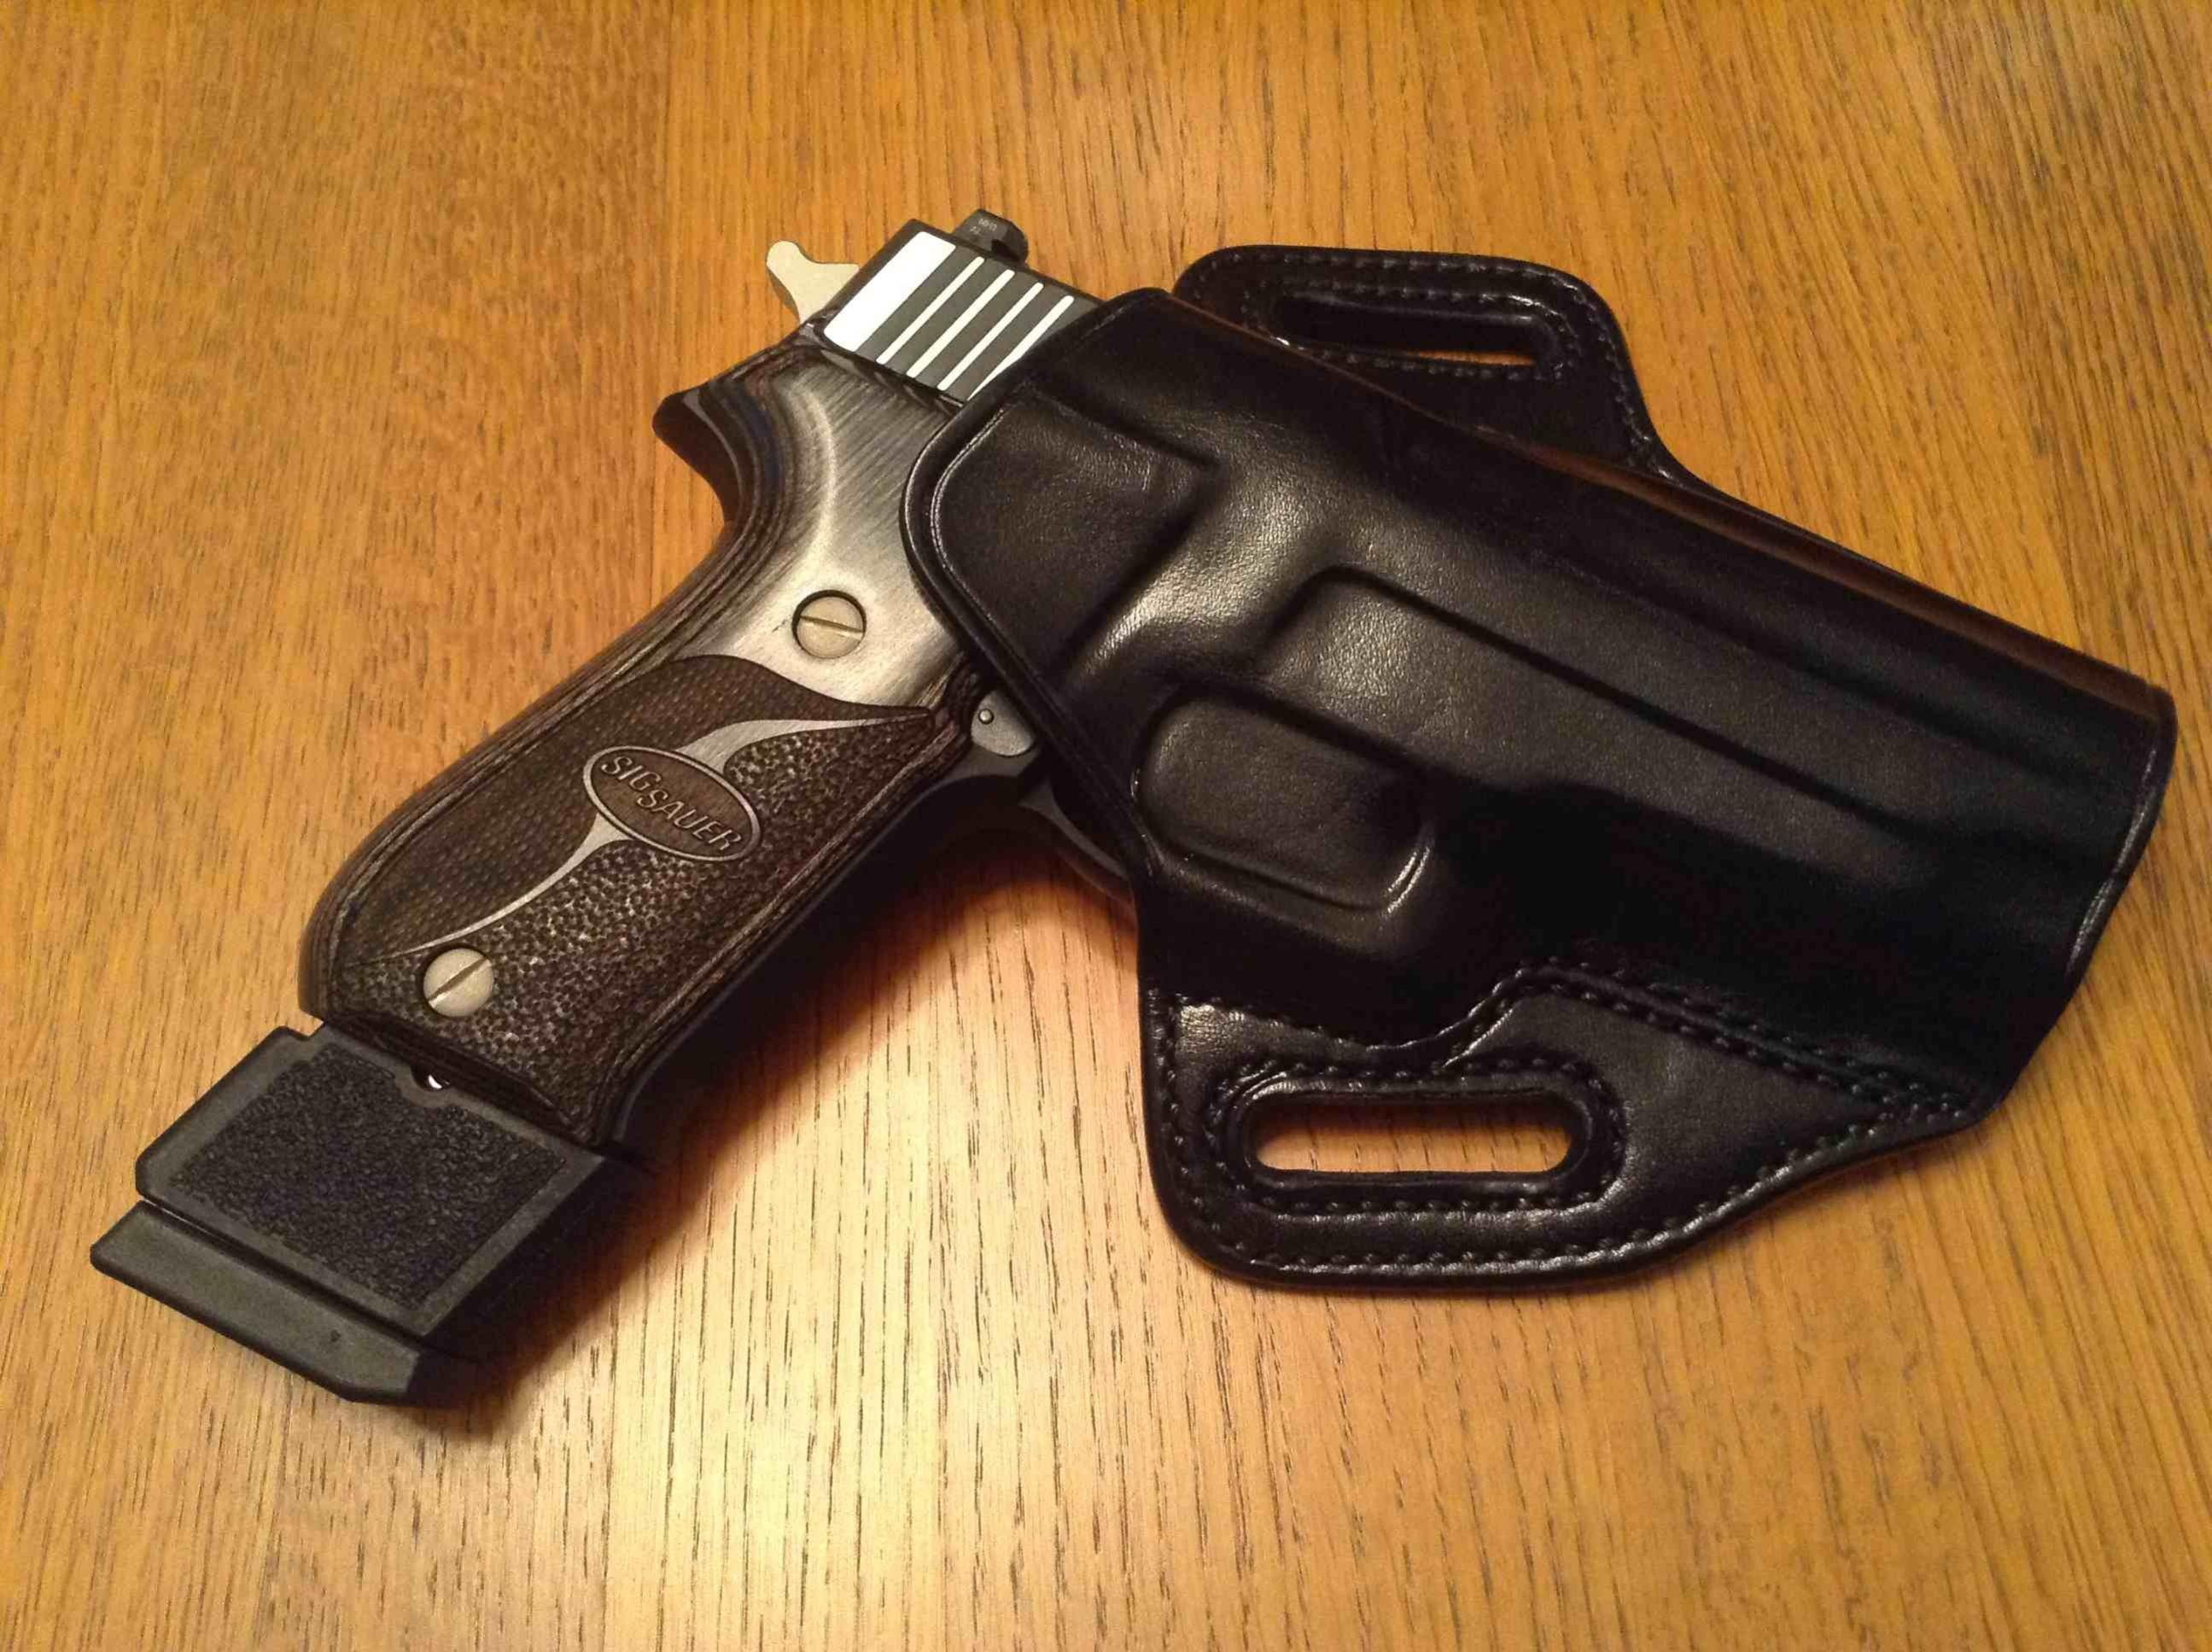 Galco Concealable OWB (one of the best)-imageuploadedbytapatalk-hd1365639530.870335.jpg